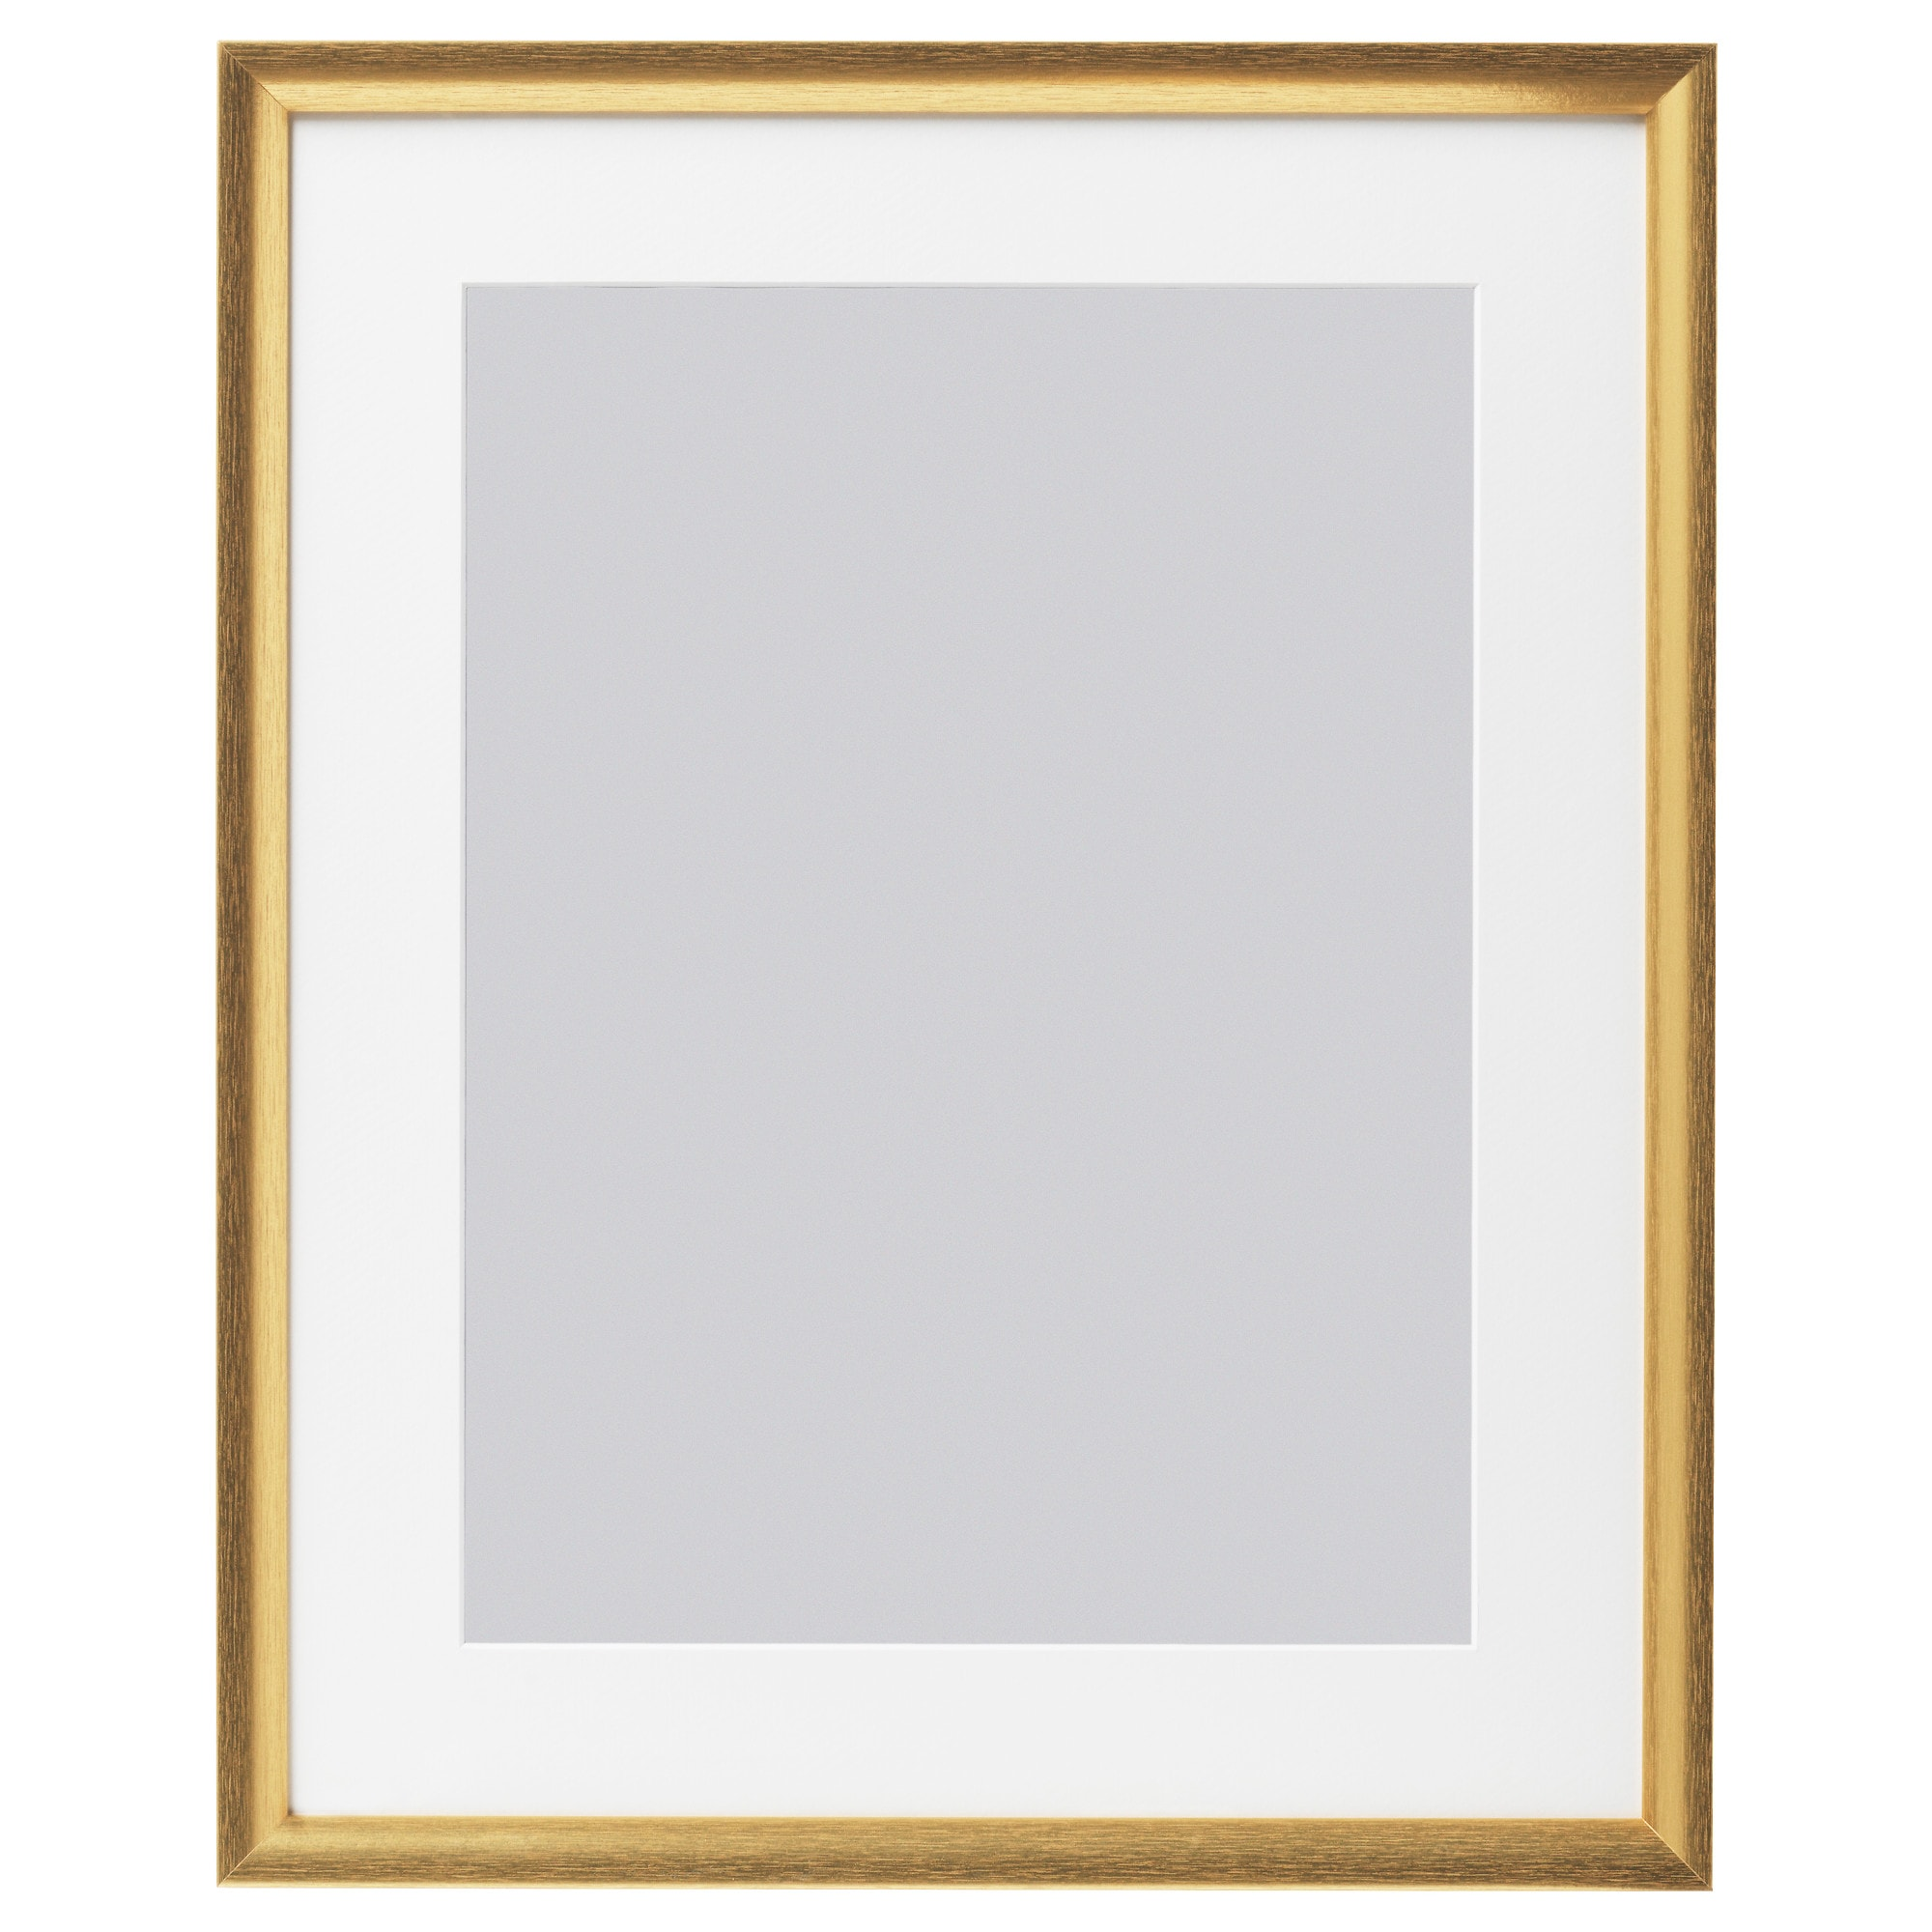 Silverhjden frame 16x20 ikea inter ikea systems bv 1999 2017 privacy policy jeuxipadfo Images